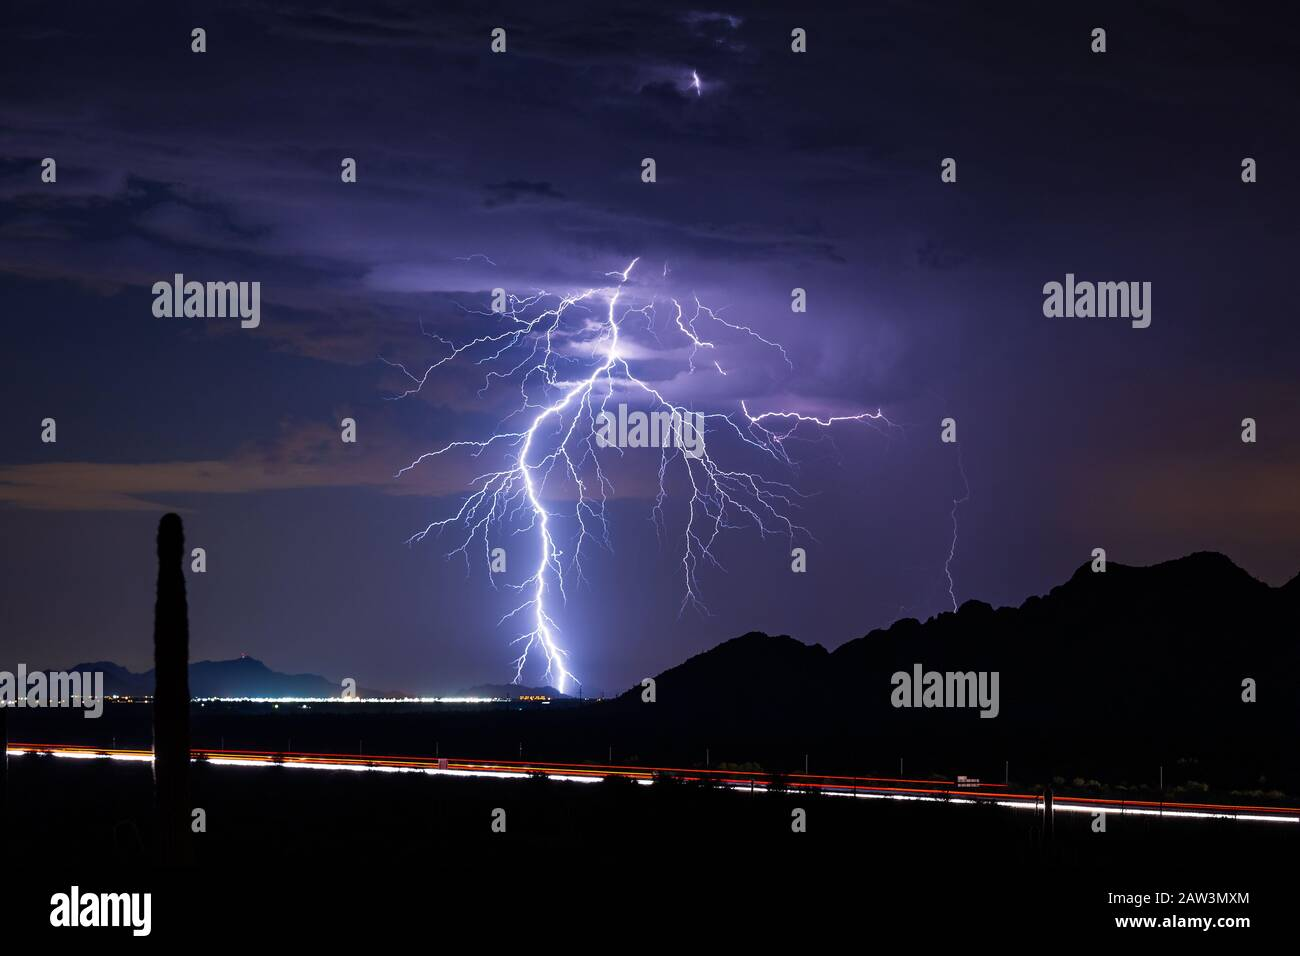 A bright lightning bolt strikes from a monsoon storm over Eloy, Arizona. Stock Photo